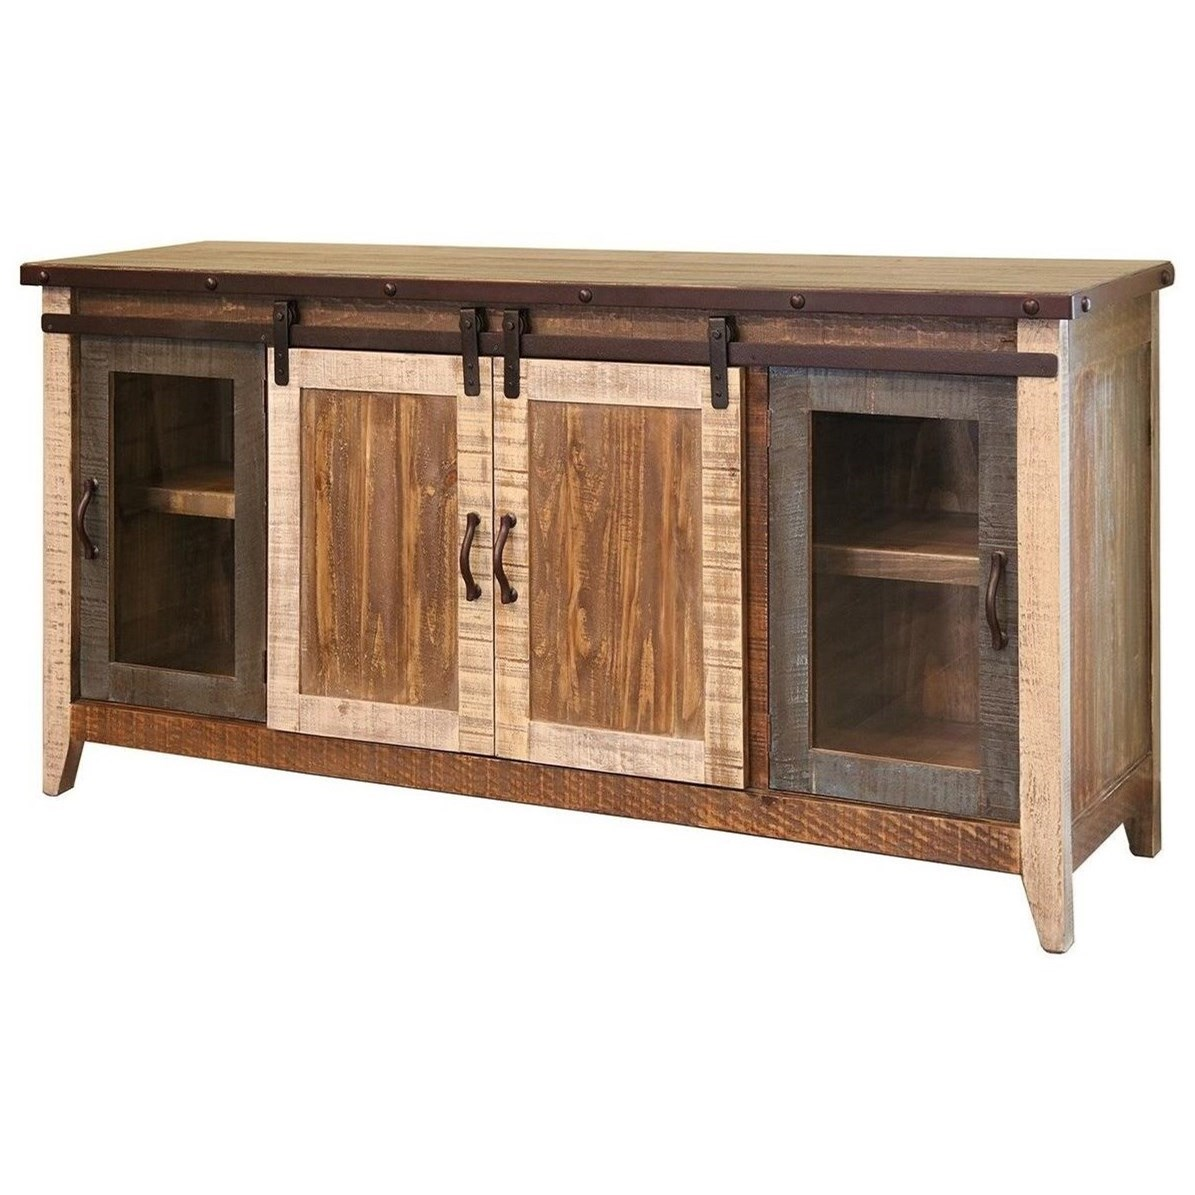 """900 Antique 70"""" TV Stand with Sliding Doors by International Furniture Direct at Catalog Outlet"""